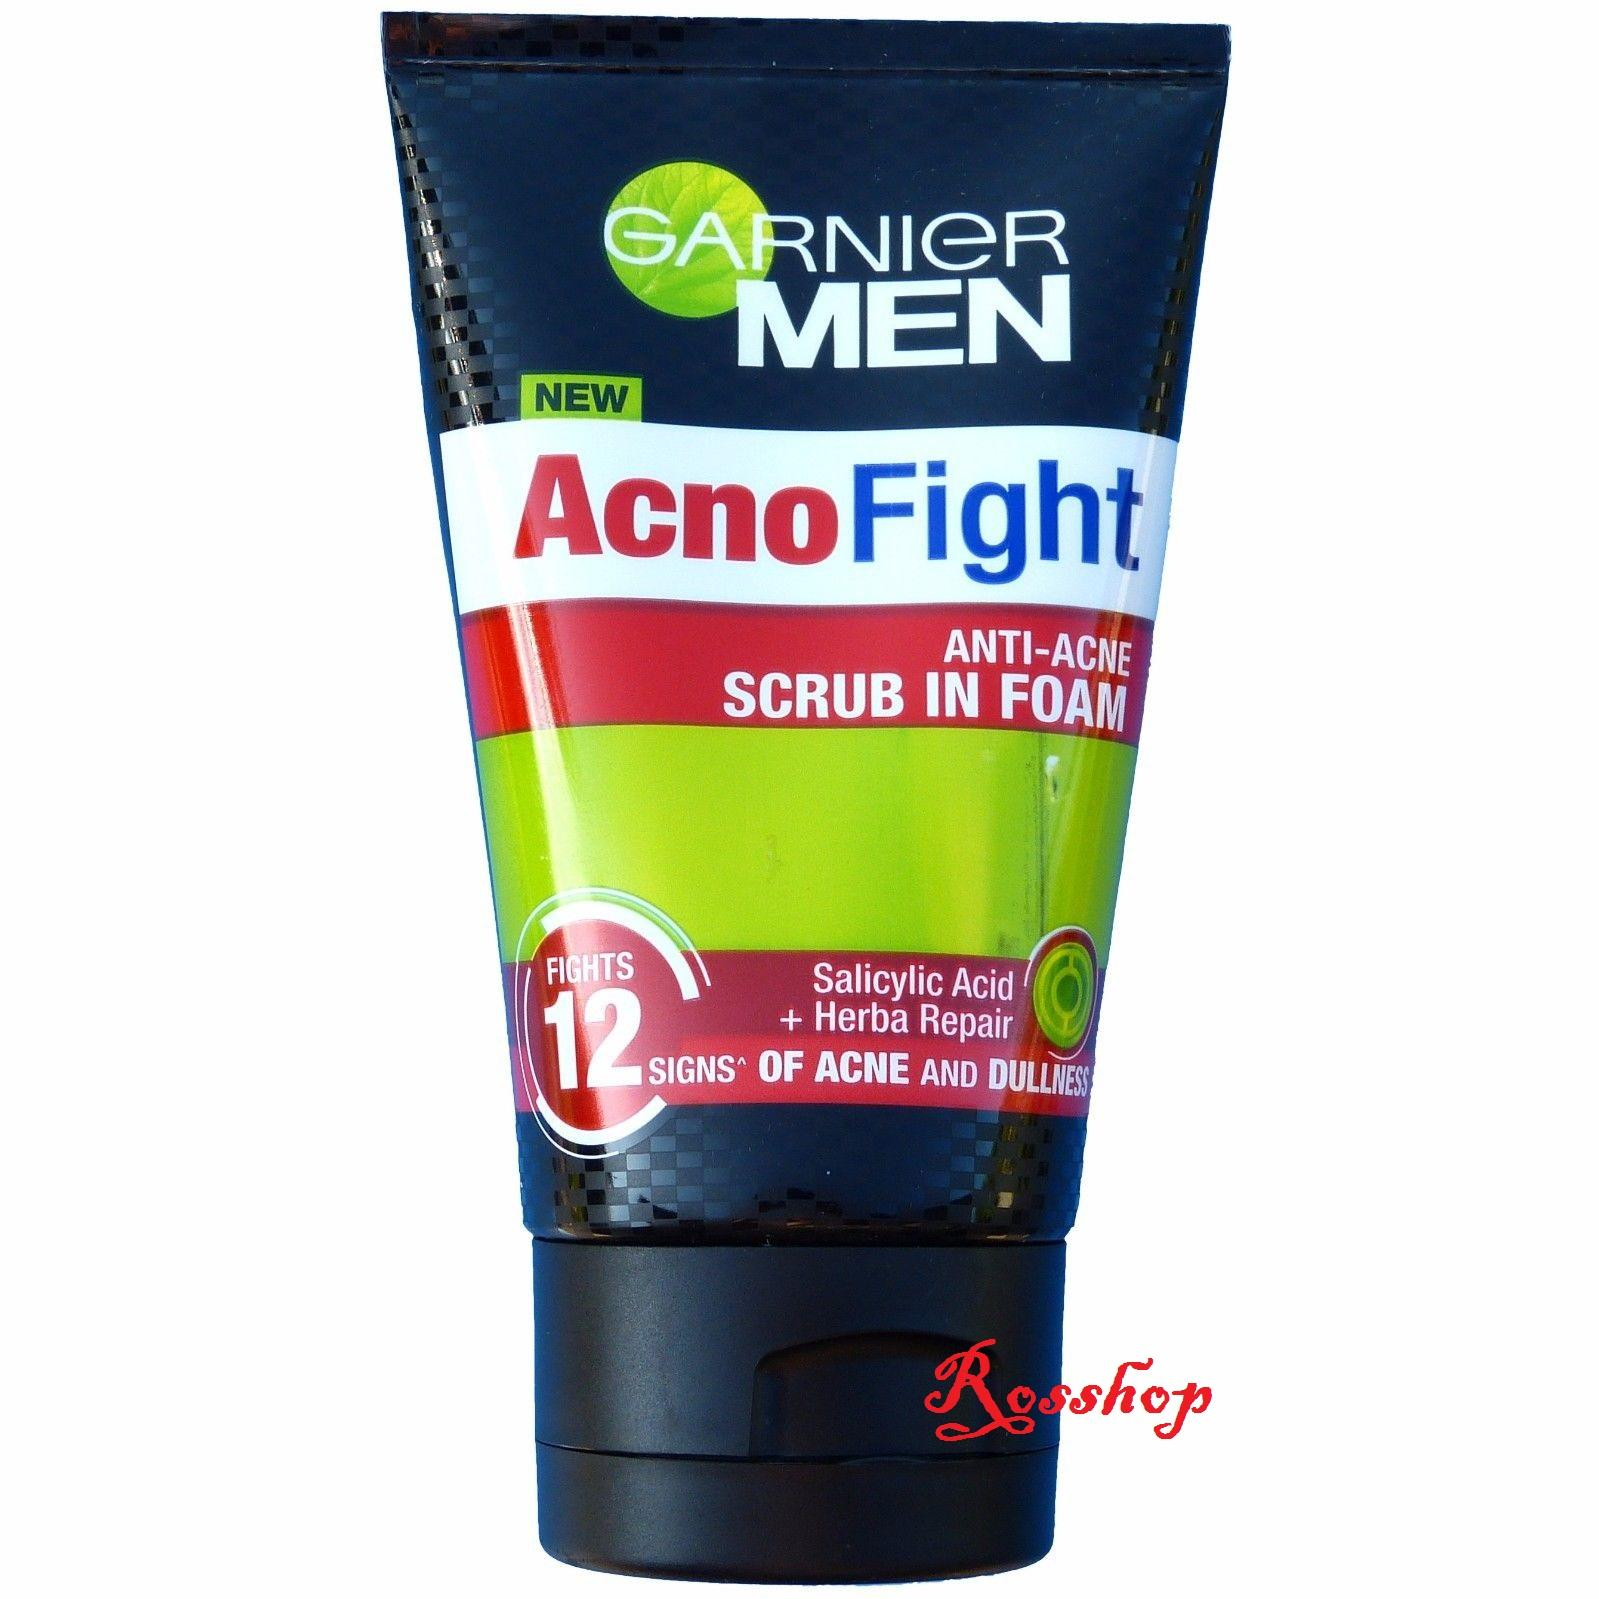 Garnier Men Acno Fight 12 in 1 Foam - 50 ml